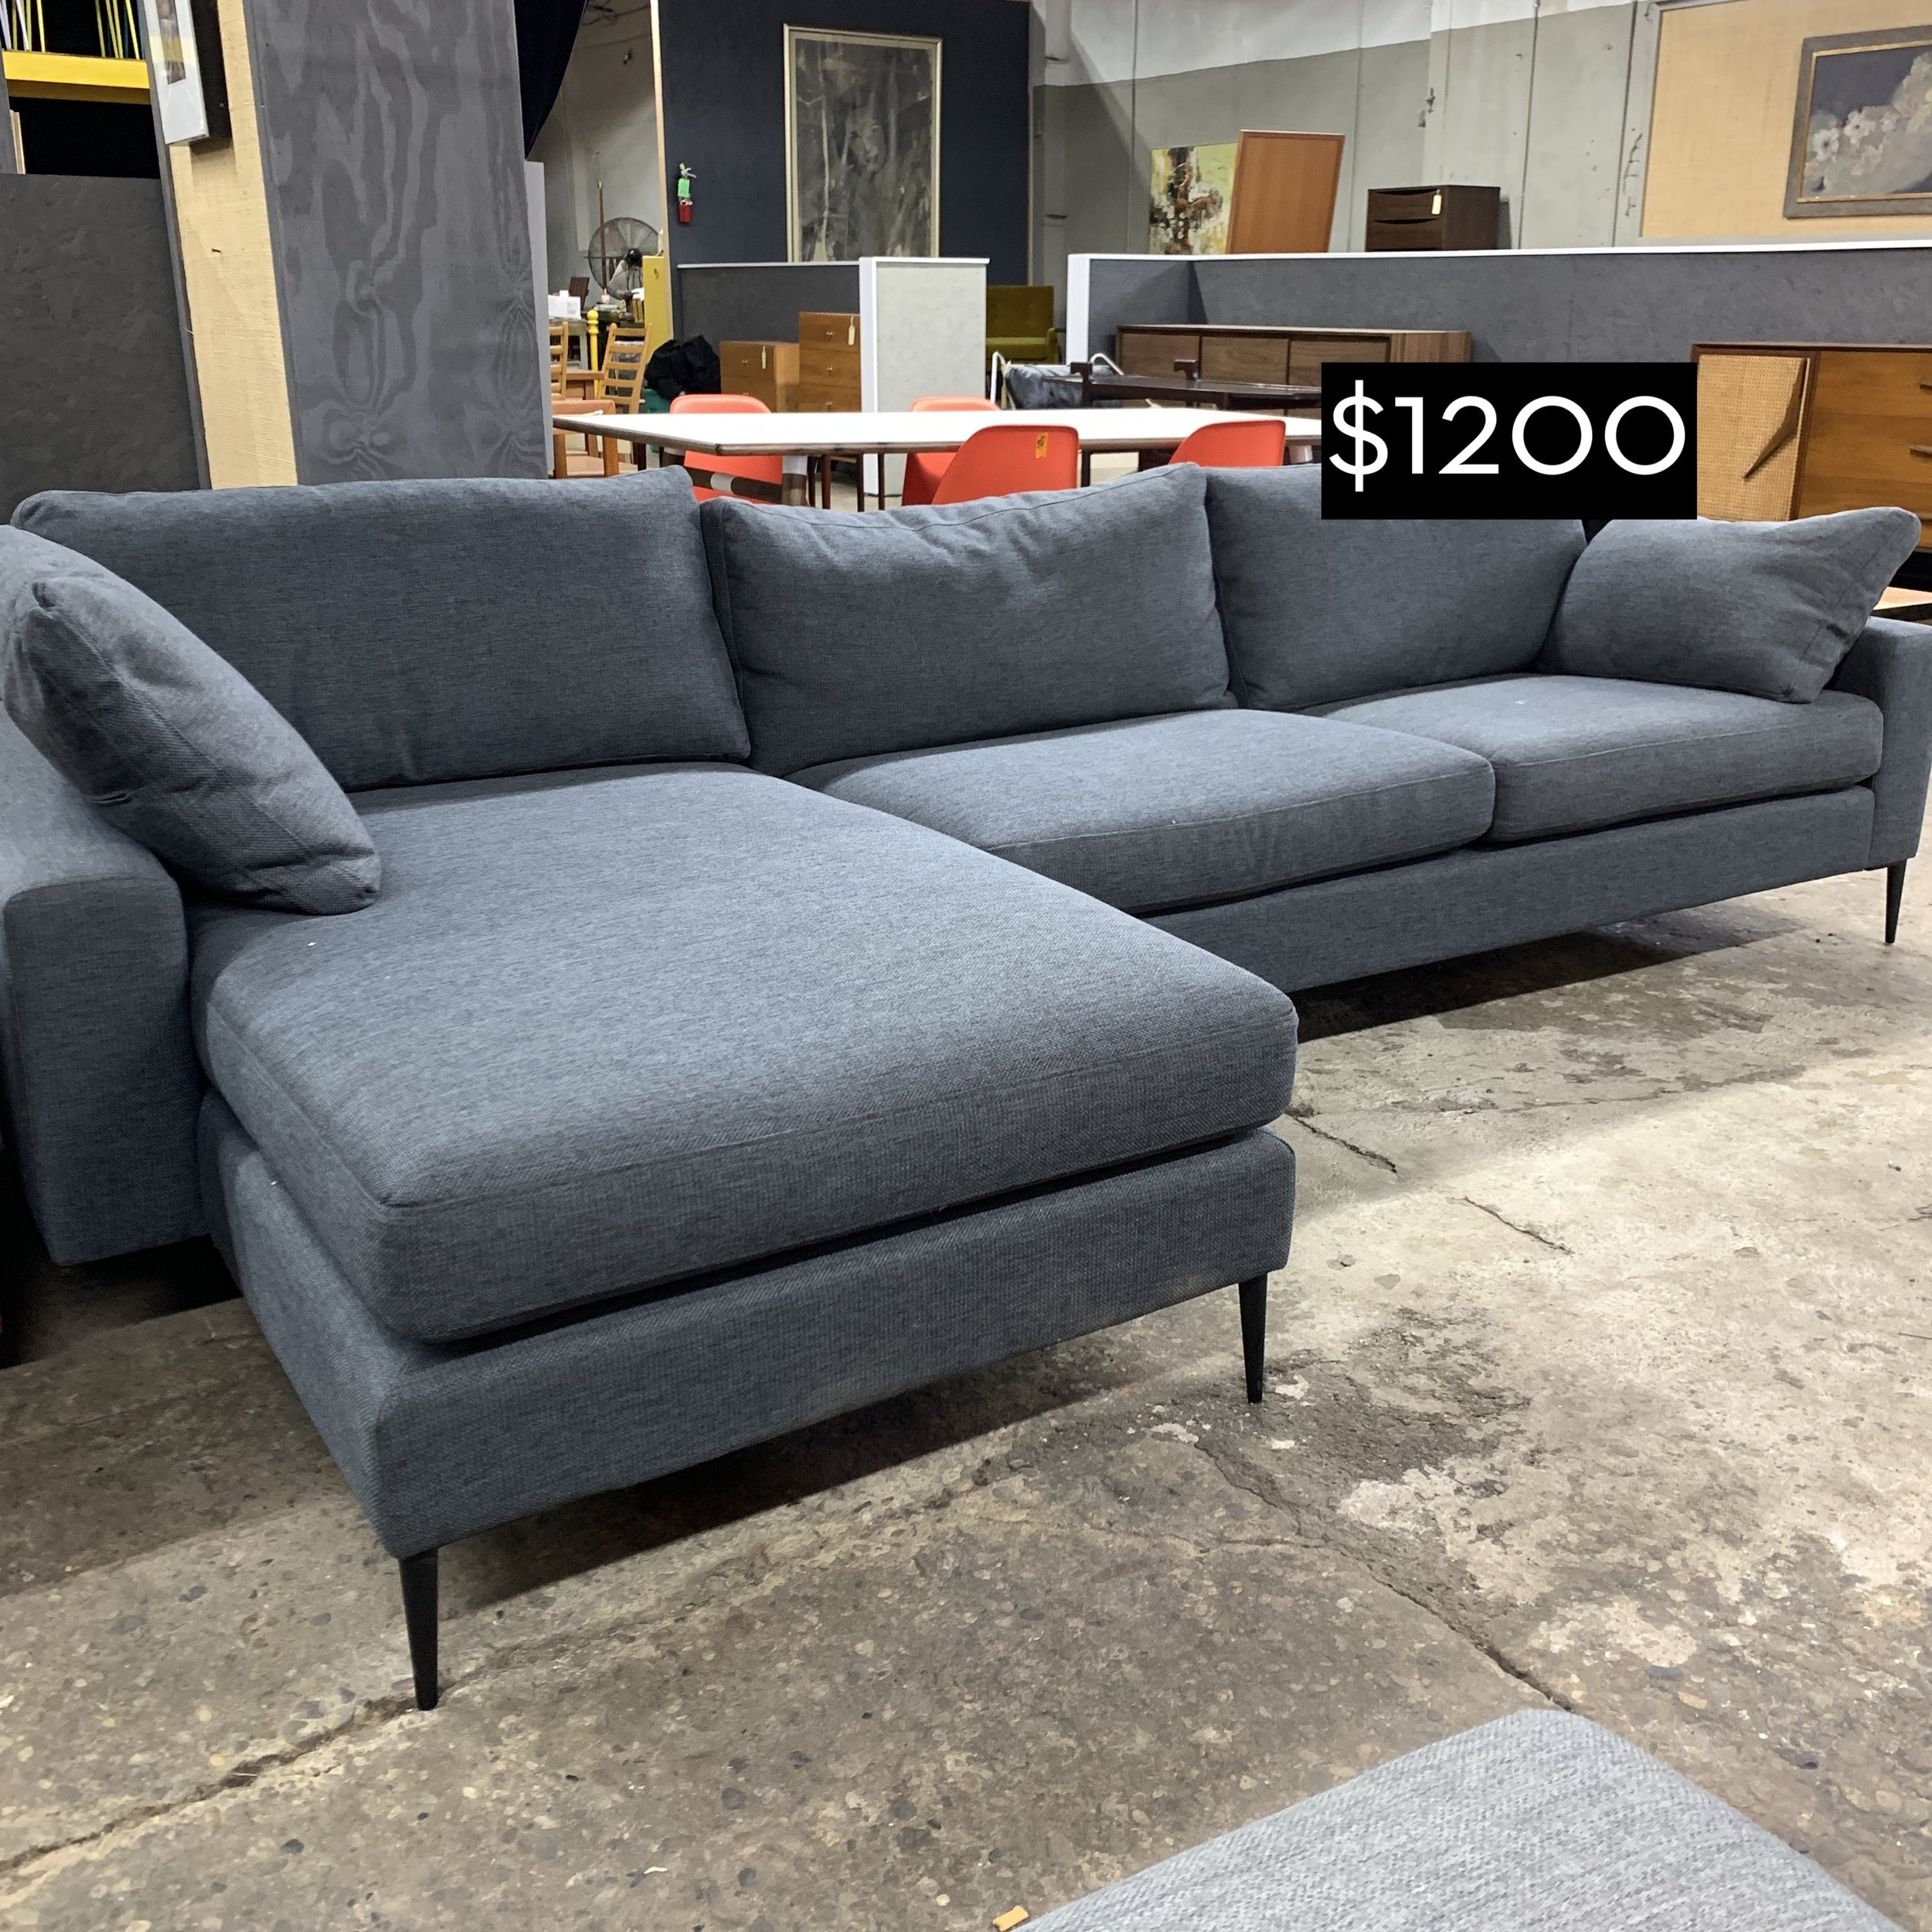 Review 4x6 Sofa Mid Century Furniture Warehouse